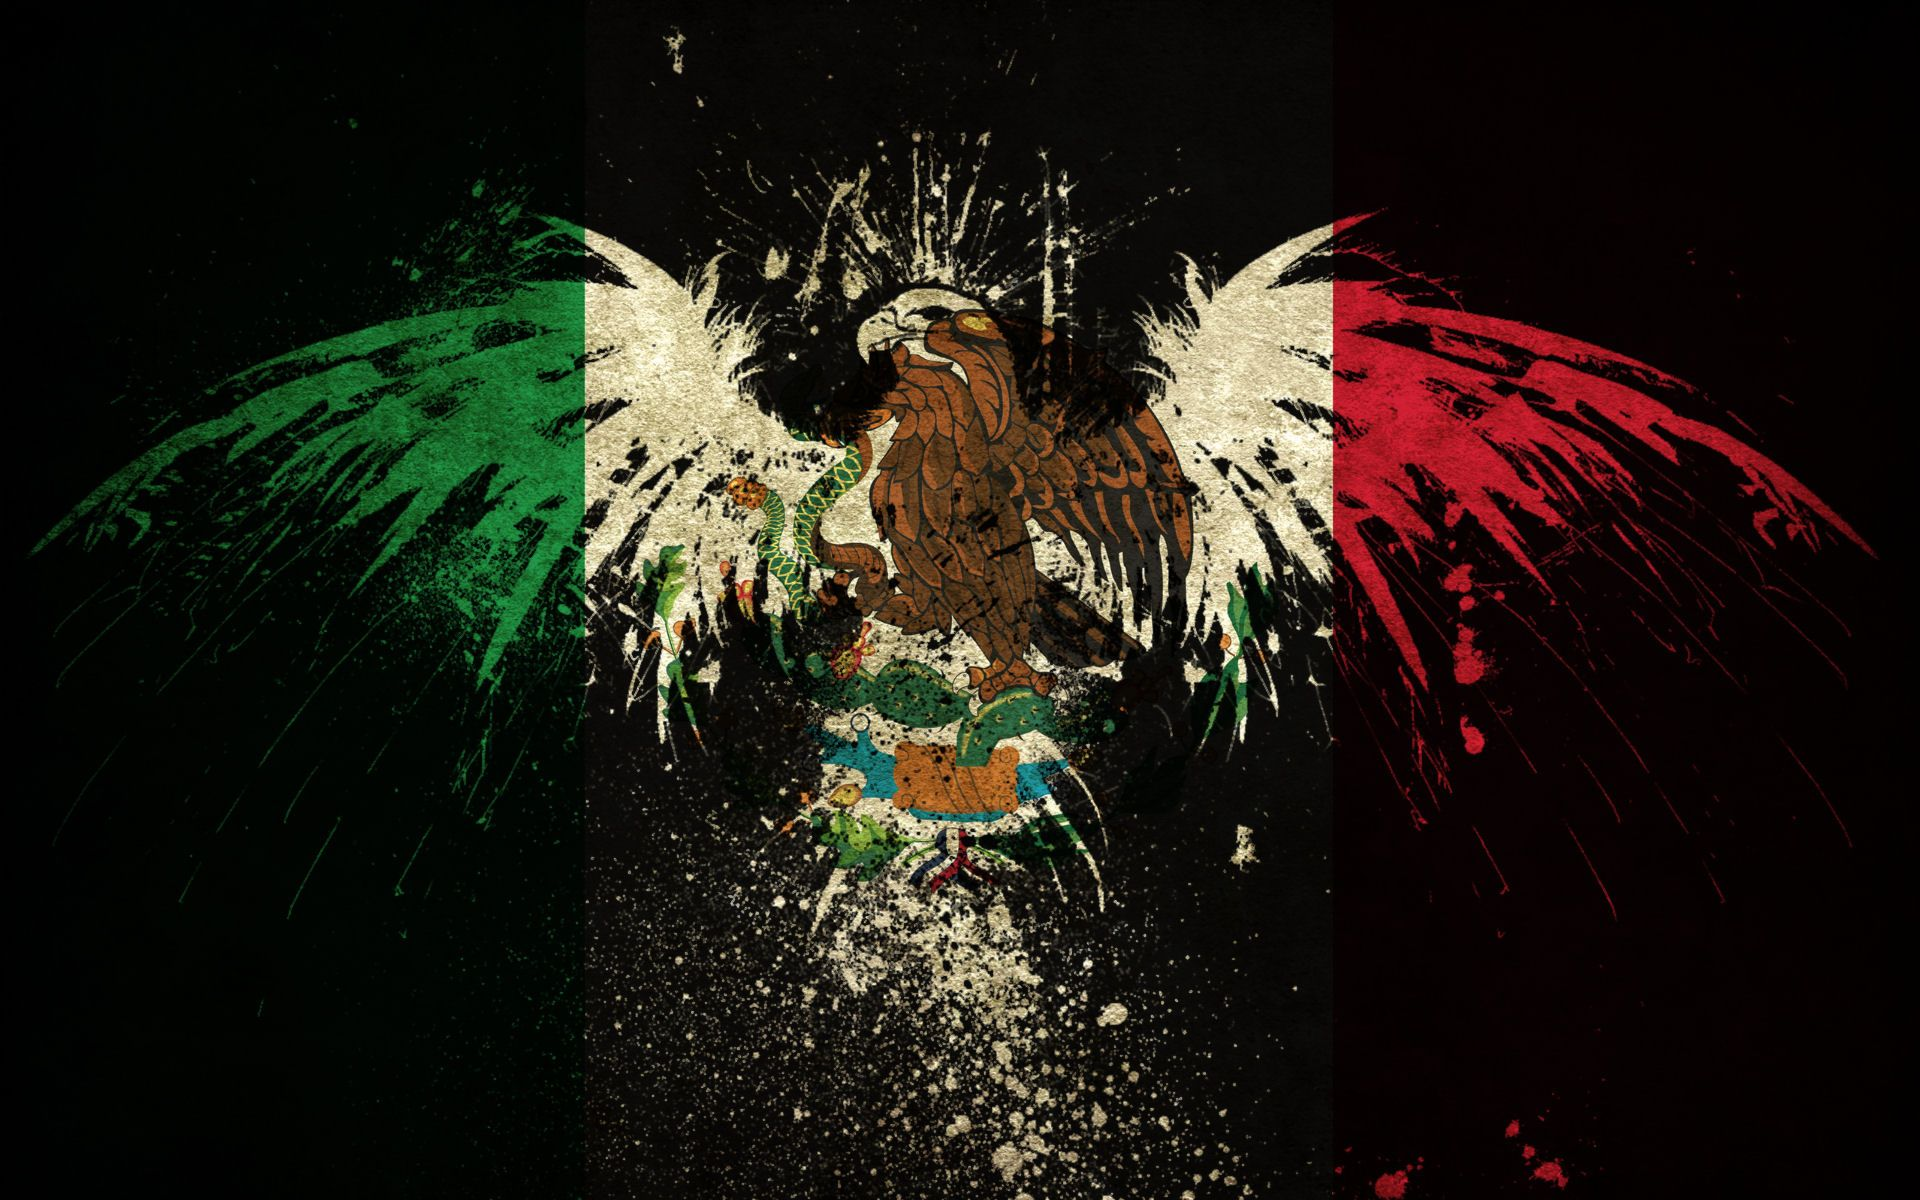 Mexico Wallpapers for Desk1920x1200 px here at 1920x1200